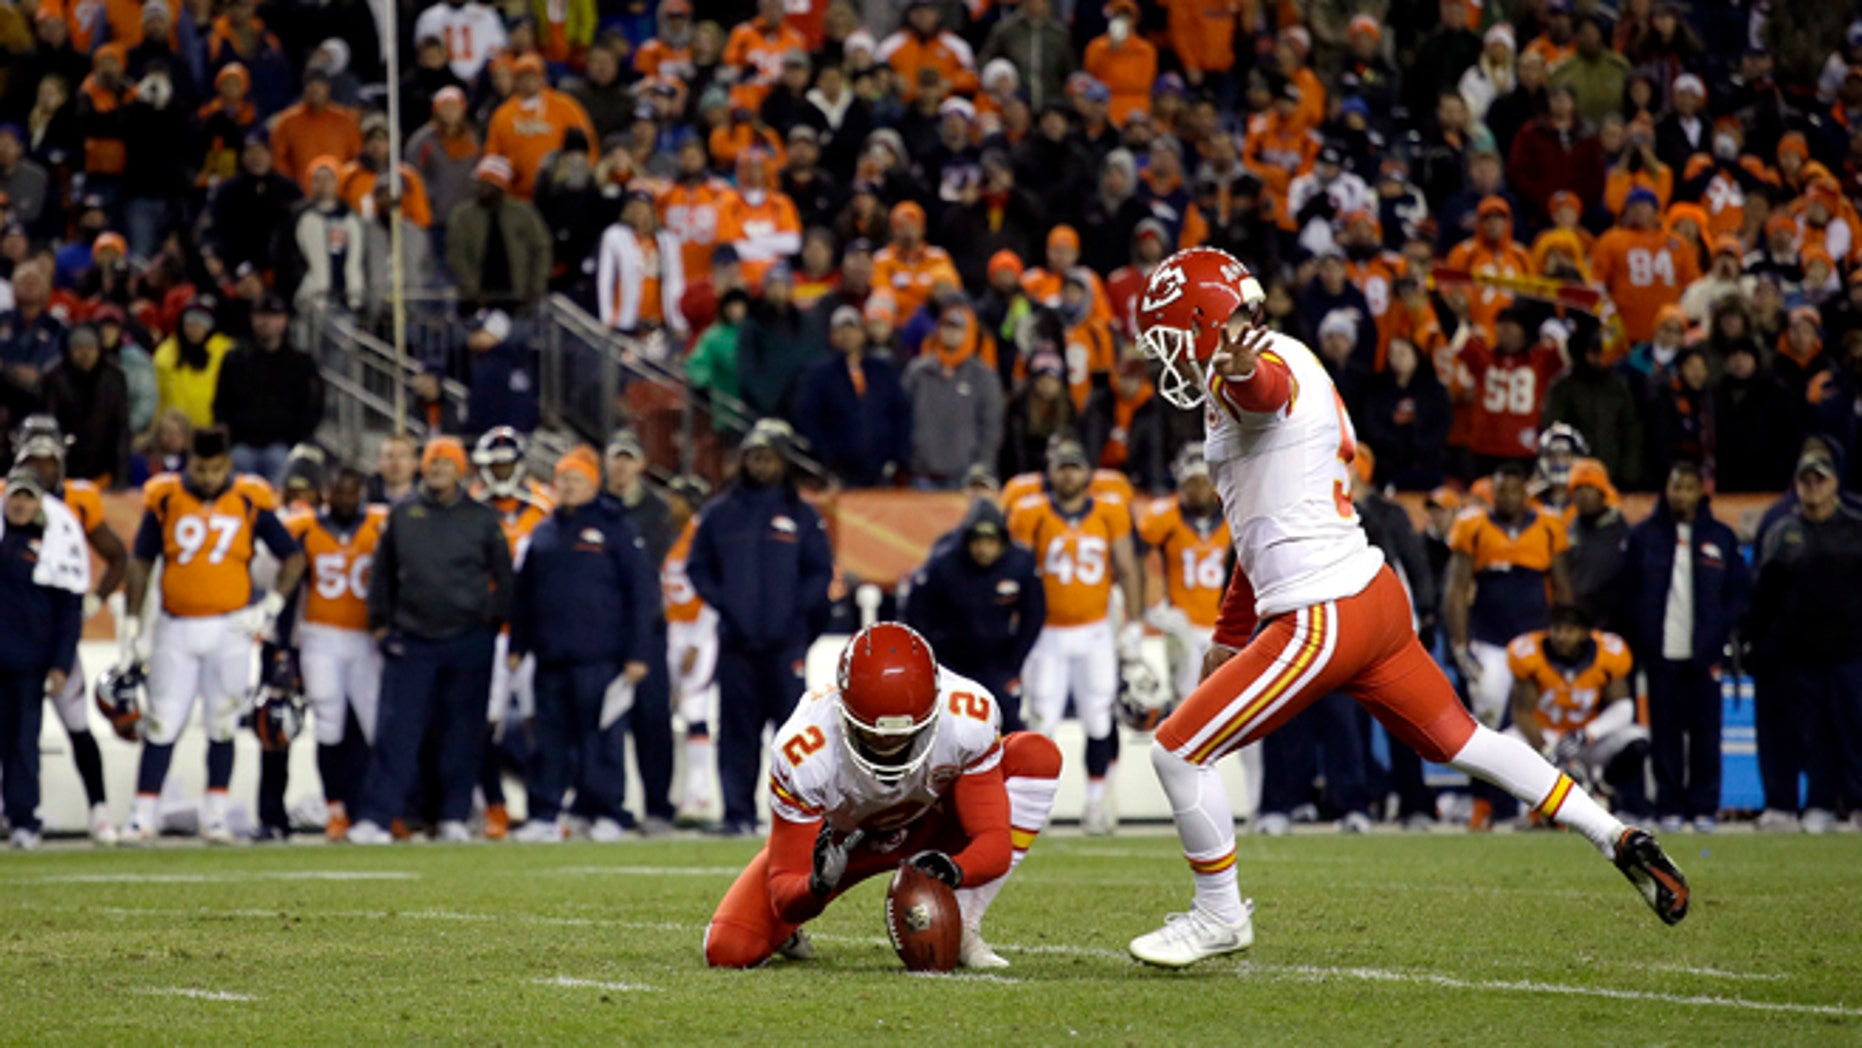 Kansas City Chiefs kicker Cairo Santos (5) kicks the game winning field goal as punter Dustin Colquitt (2) holds during overtime of an NFL football game against the Denver Broncos, Sunday, Nov. 27, 2016, in Denver. The Chiefs won 30-27 in overtime. (AP Photo/Joe Mahoney)